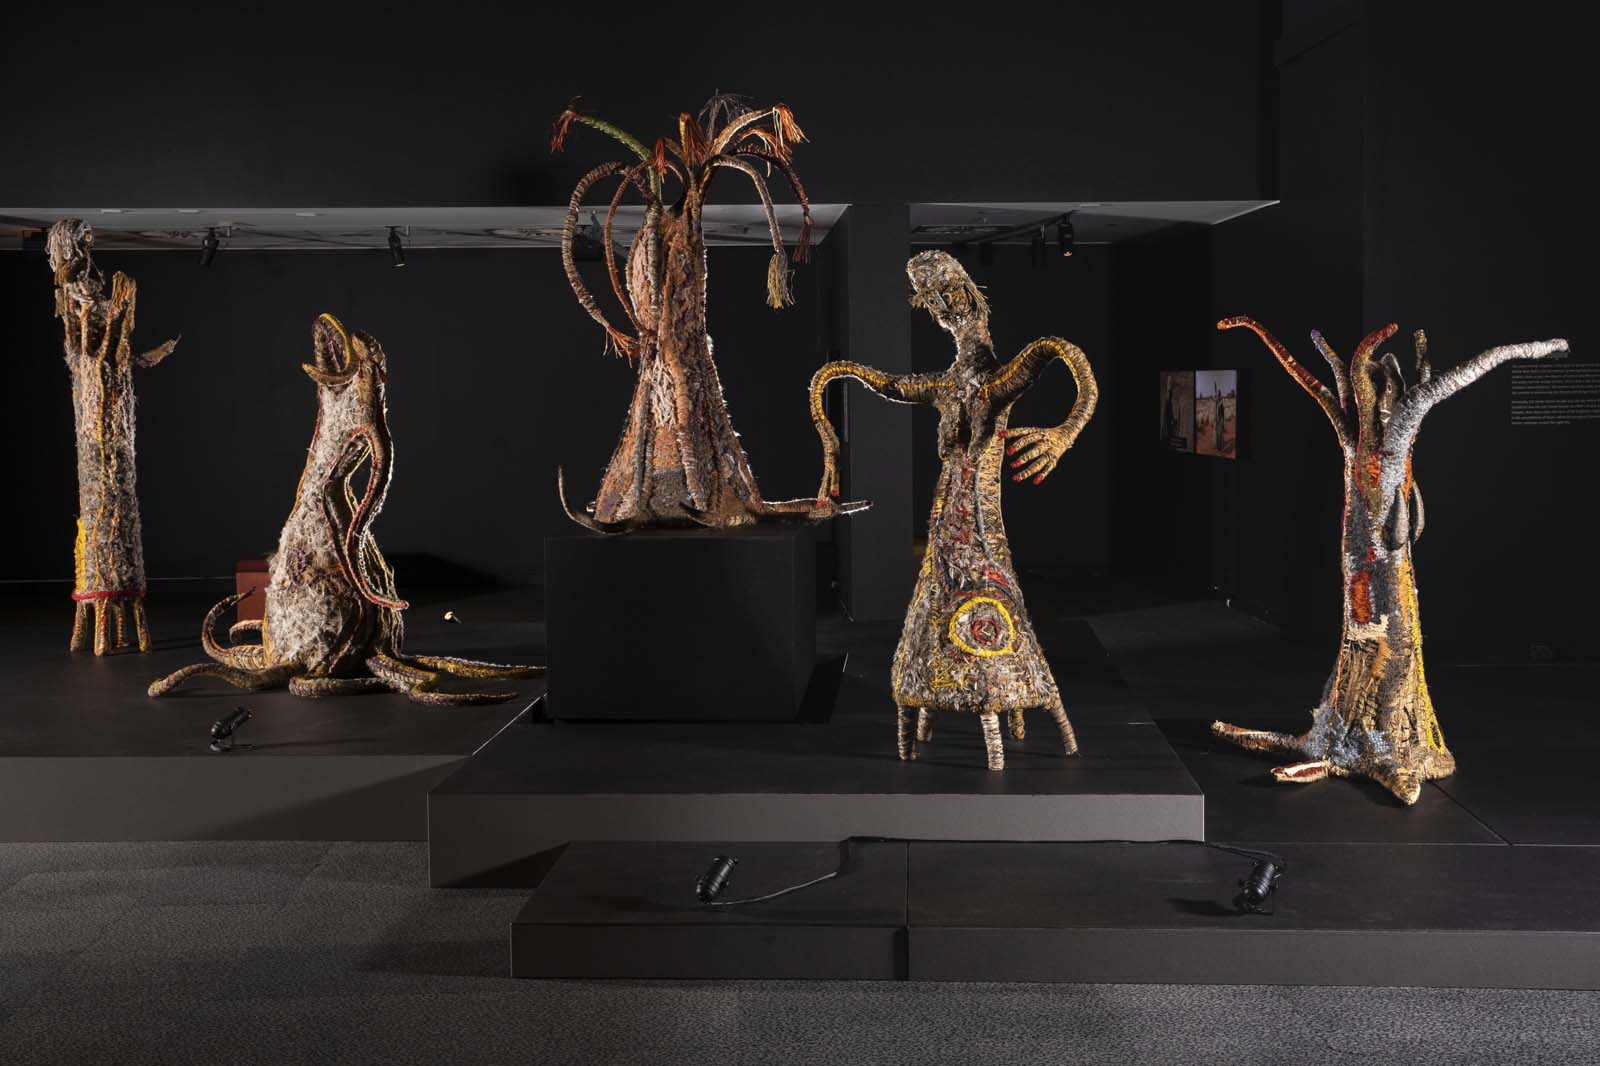 installaton shot of several sculptural figures represnting women made from natural fibres and plant materials